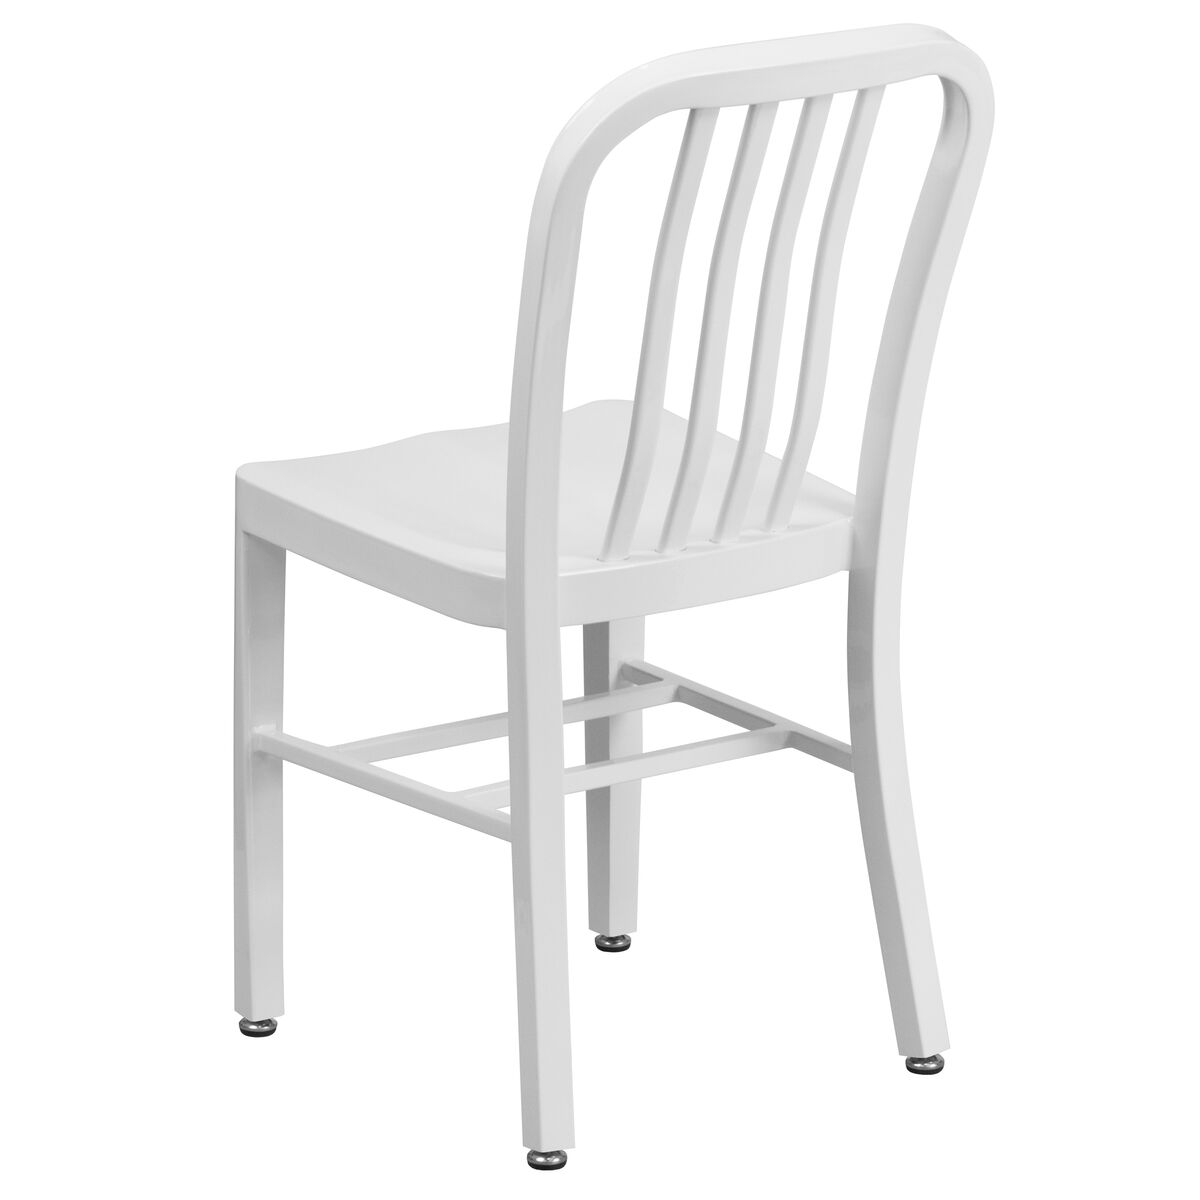 Our white metal indoor outdoor chair is on sale now